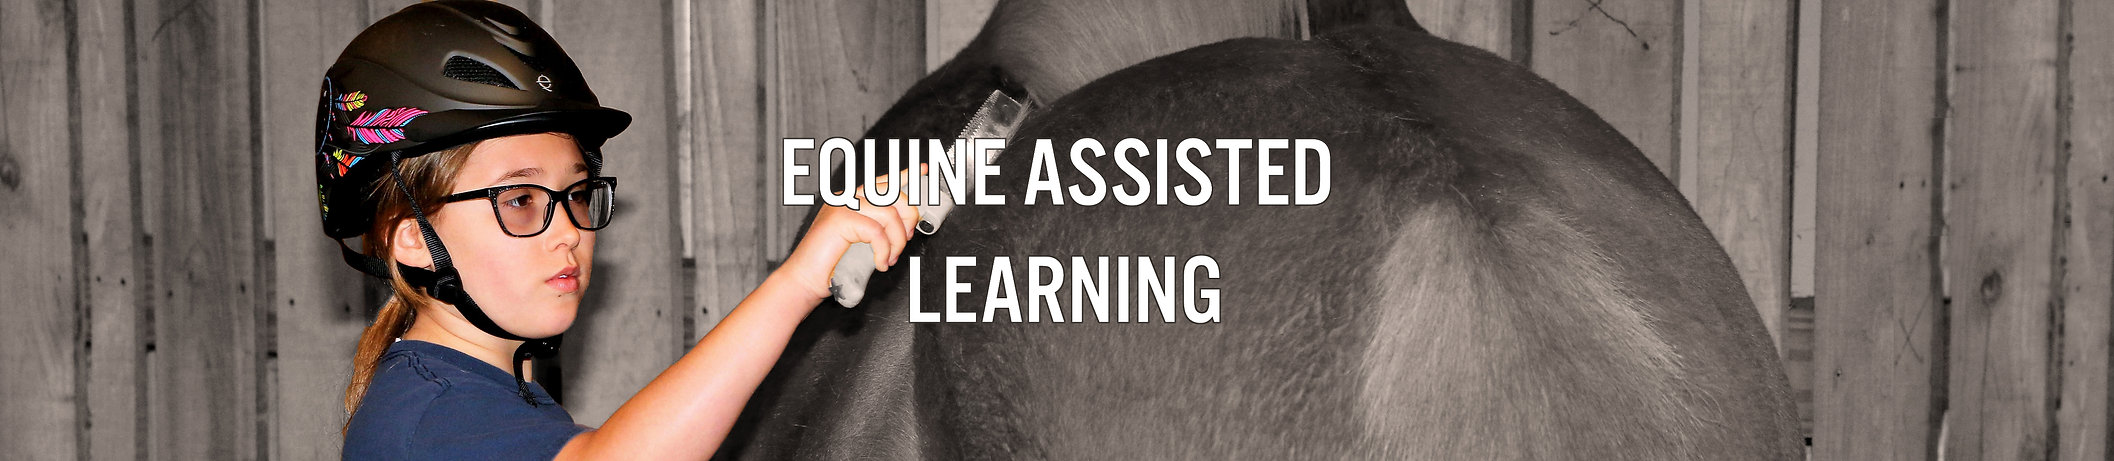 Equine Assisted Learning2TEXT.jpg